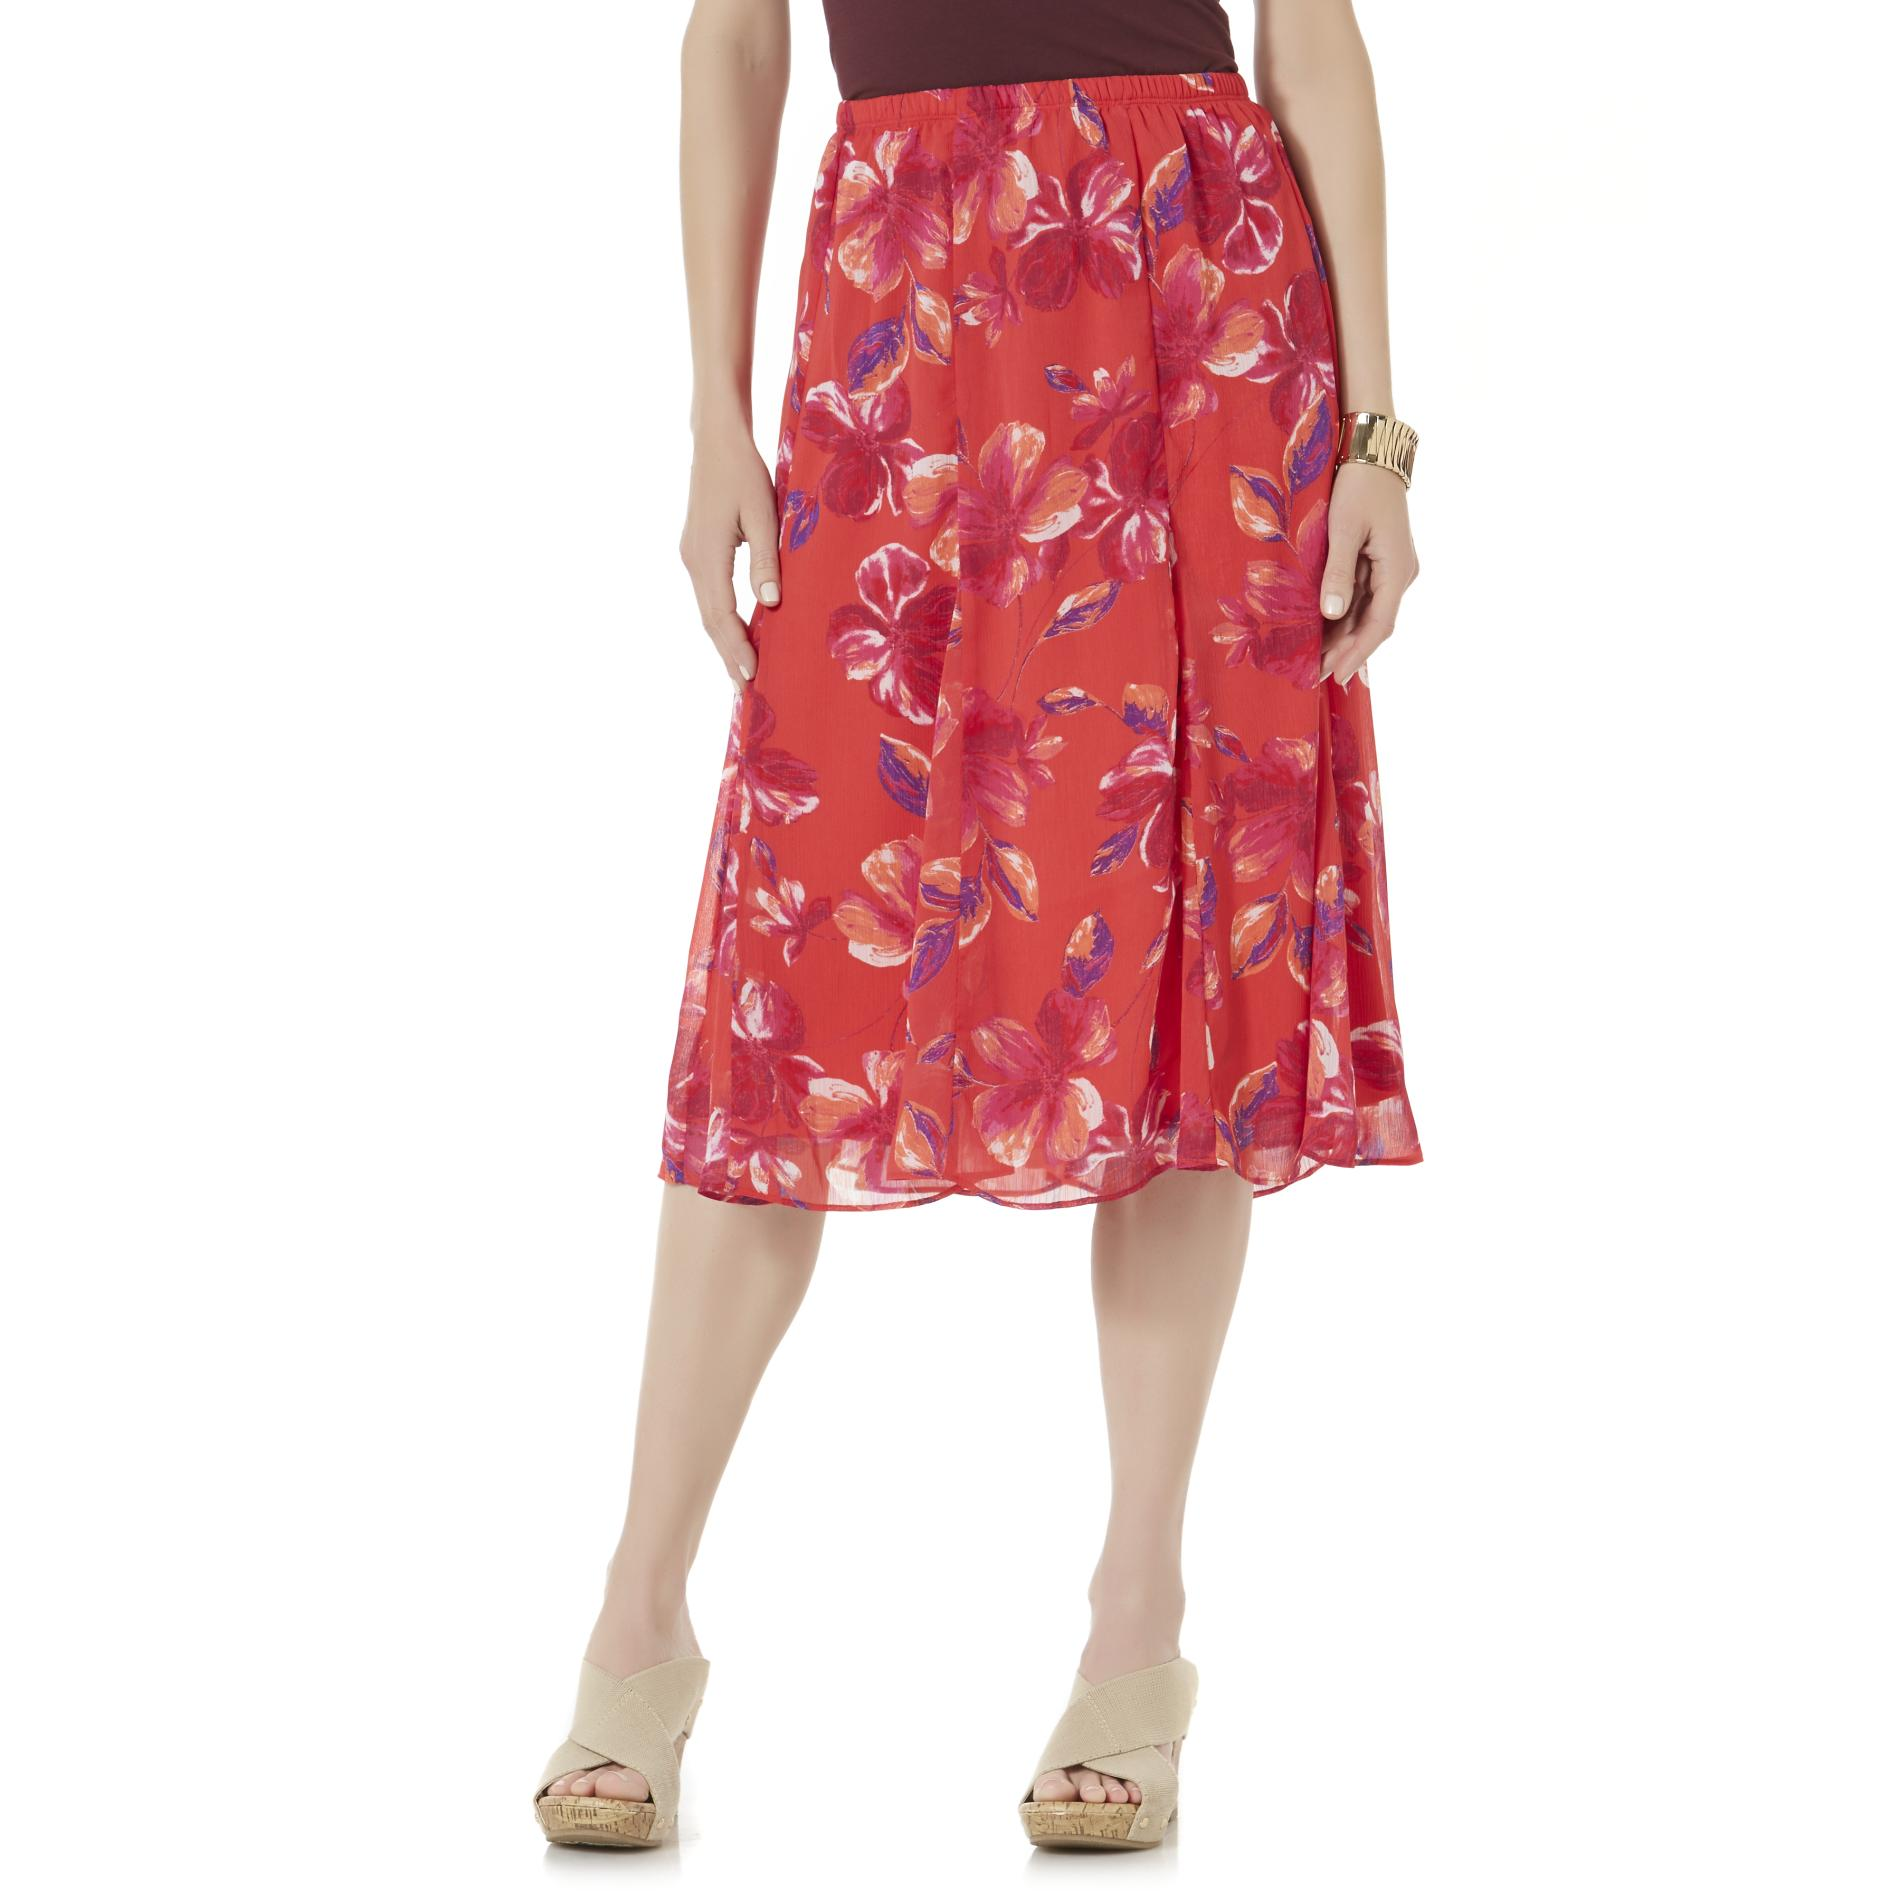 School Skirts Kmart Laura Scott Women 39s Crepe Skirt Floral Sears